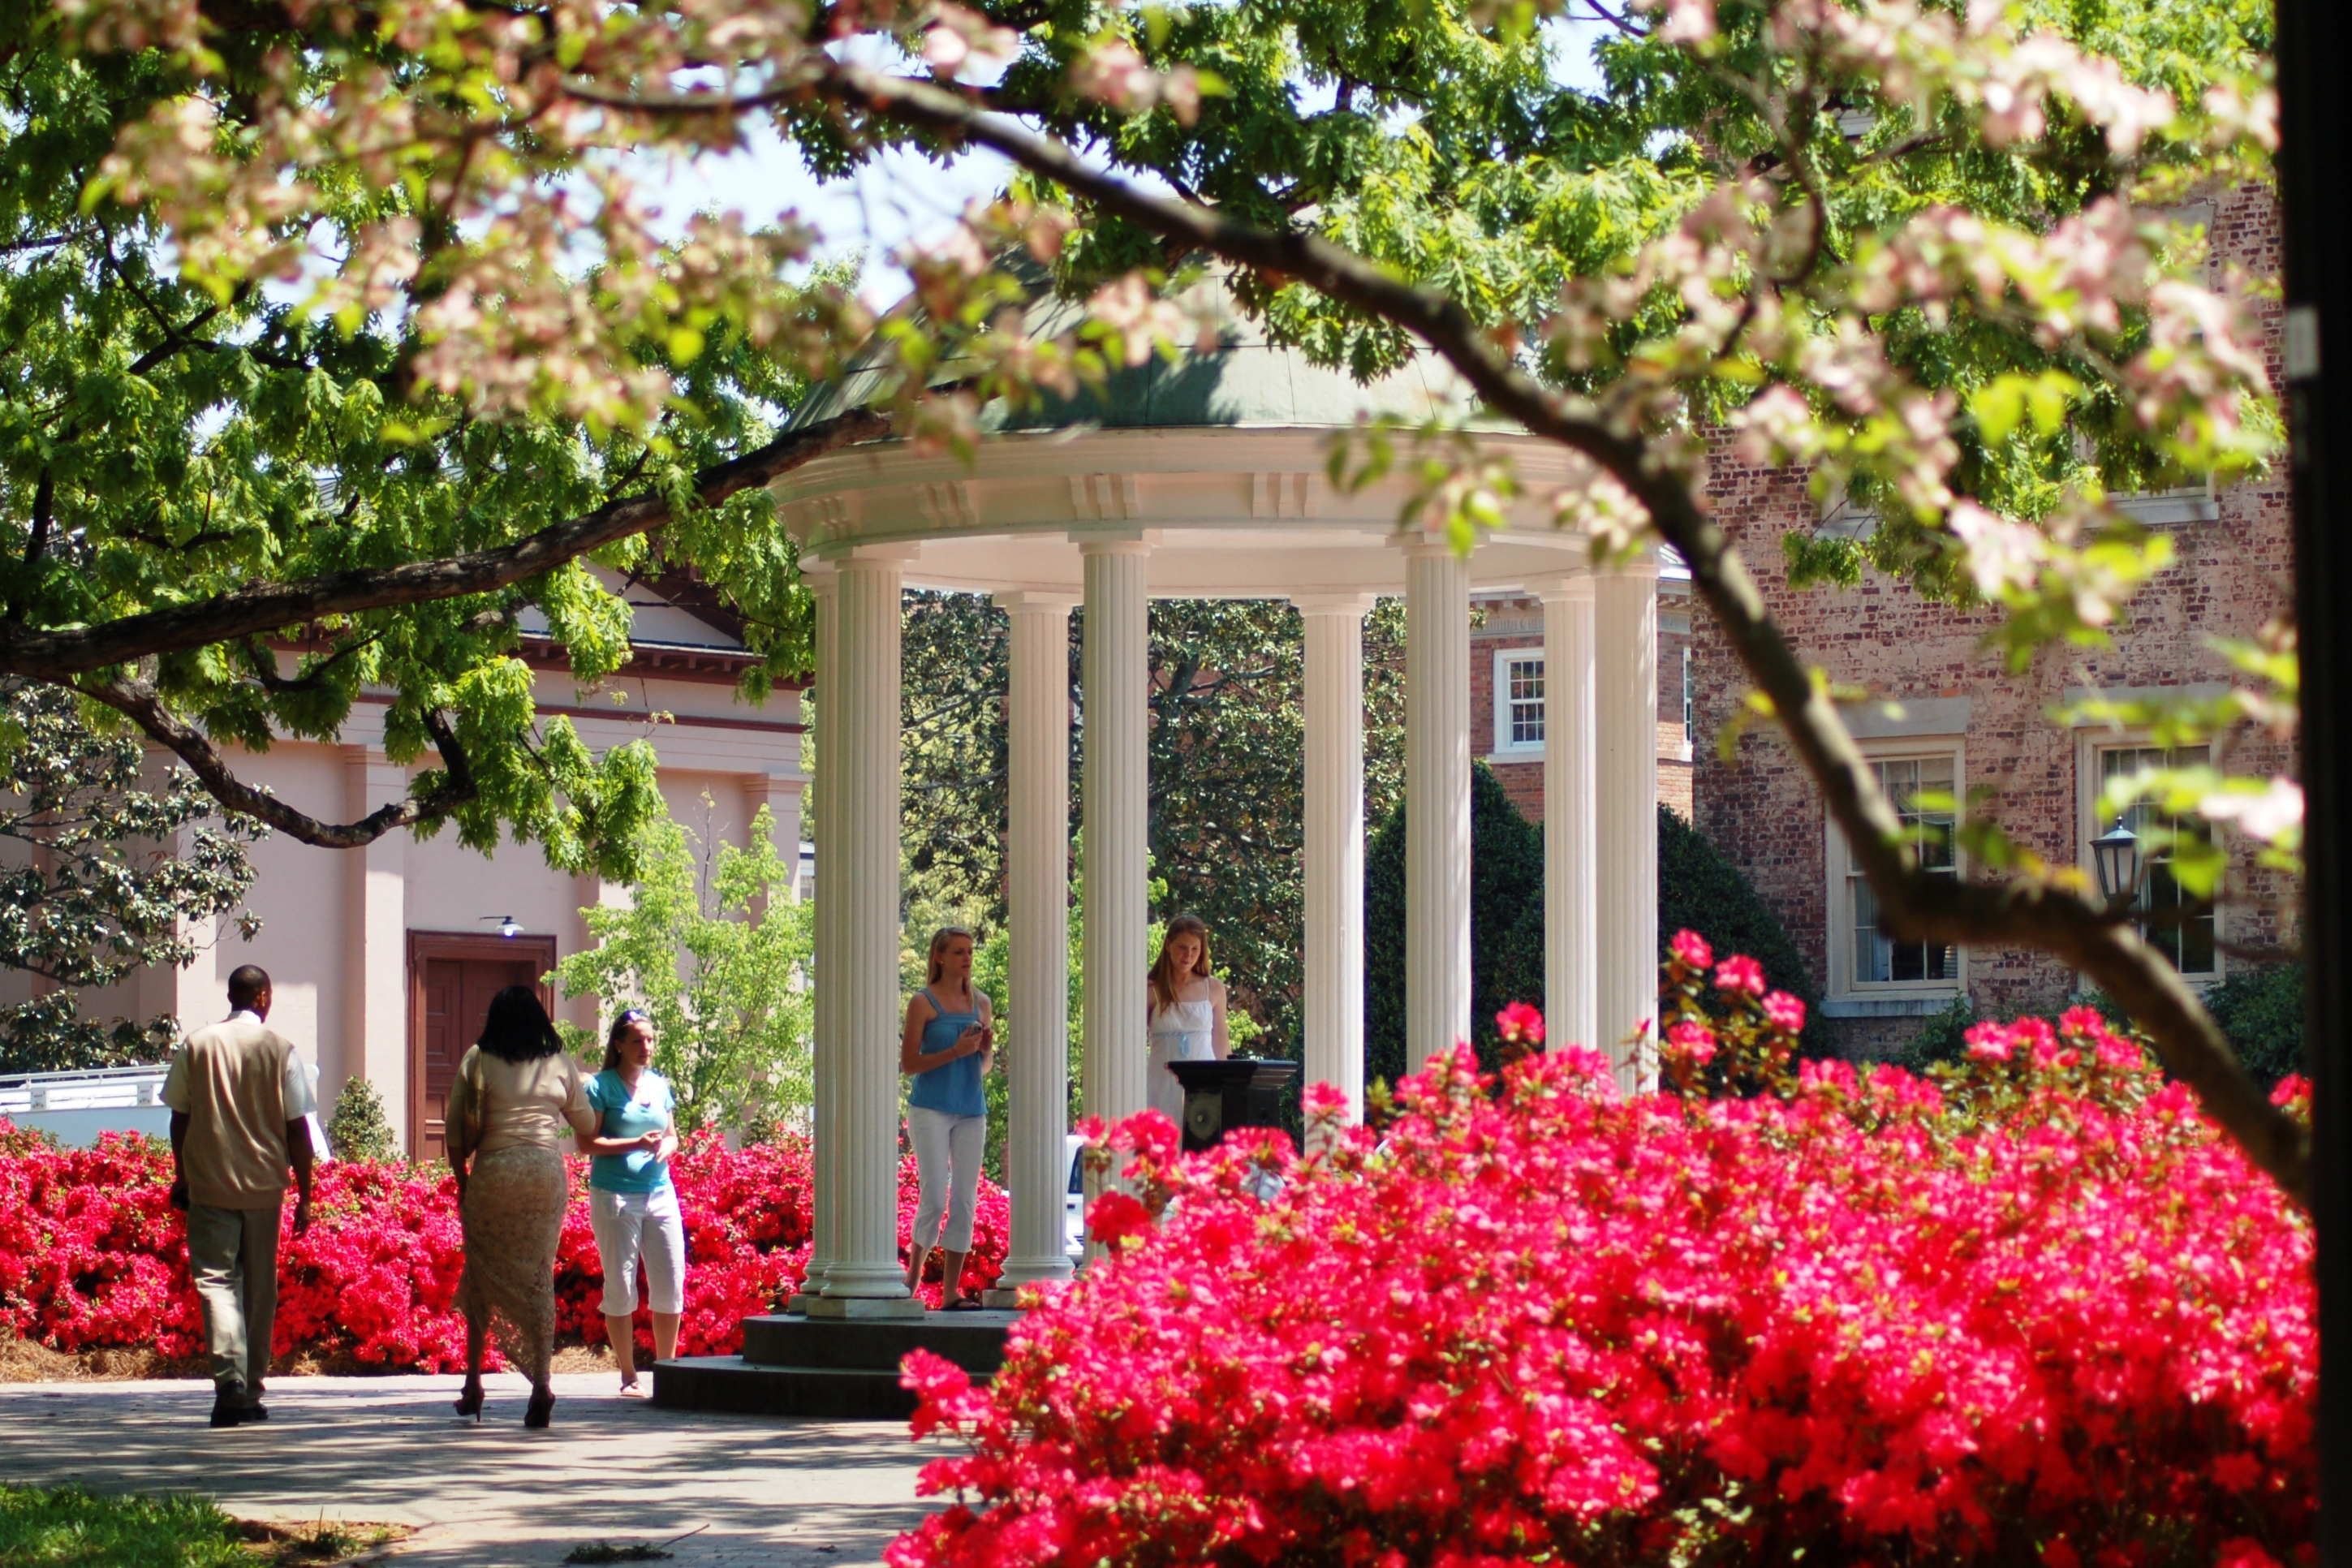 University of North Carolina at Chapel Hill campus